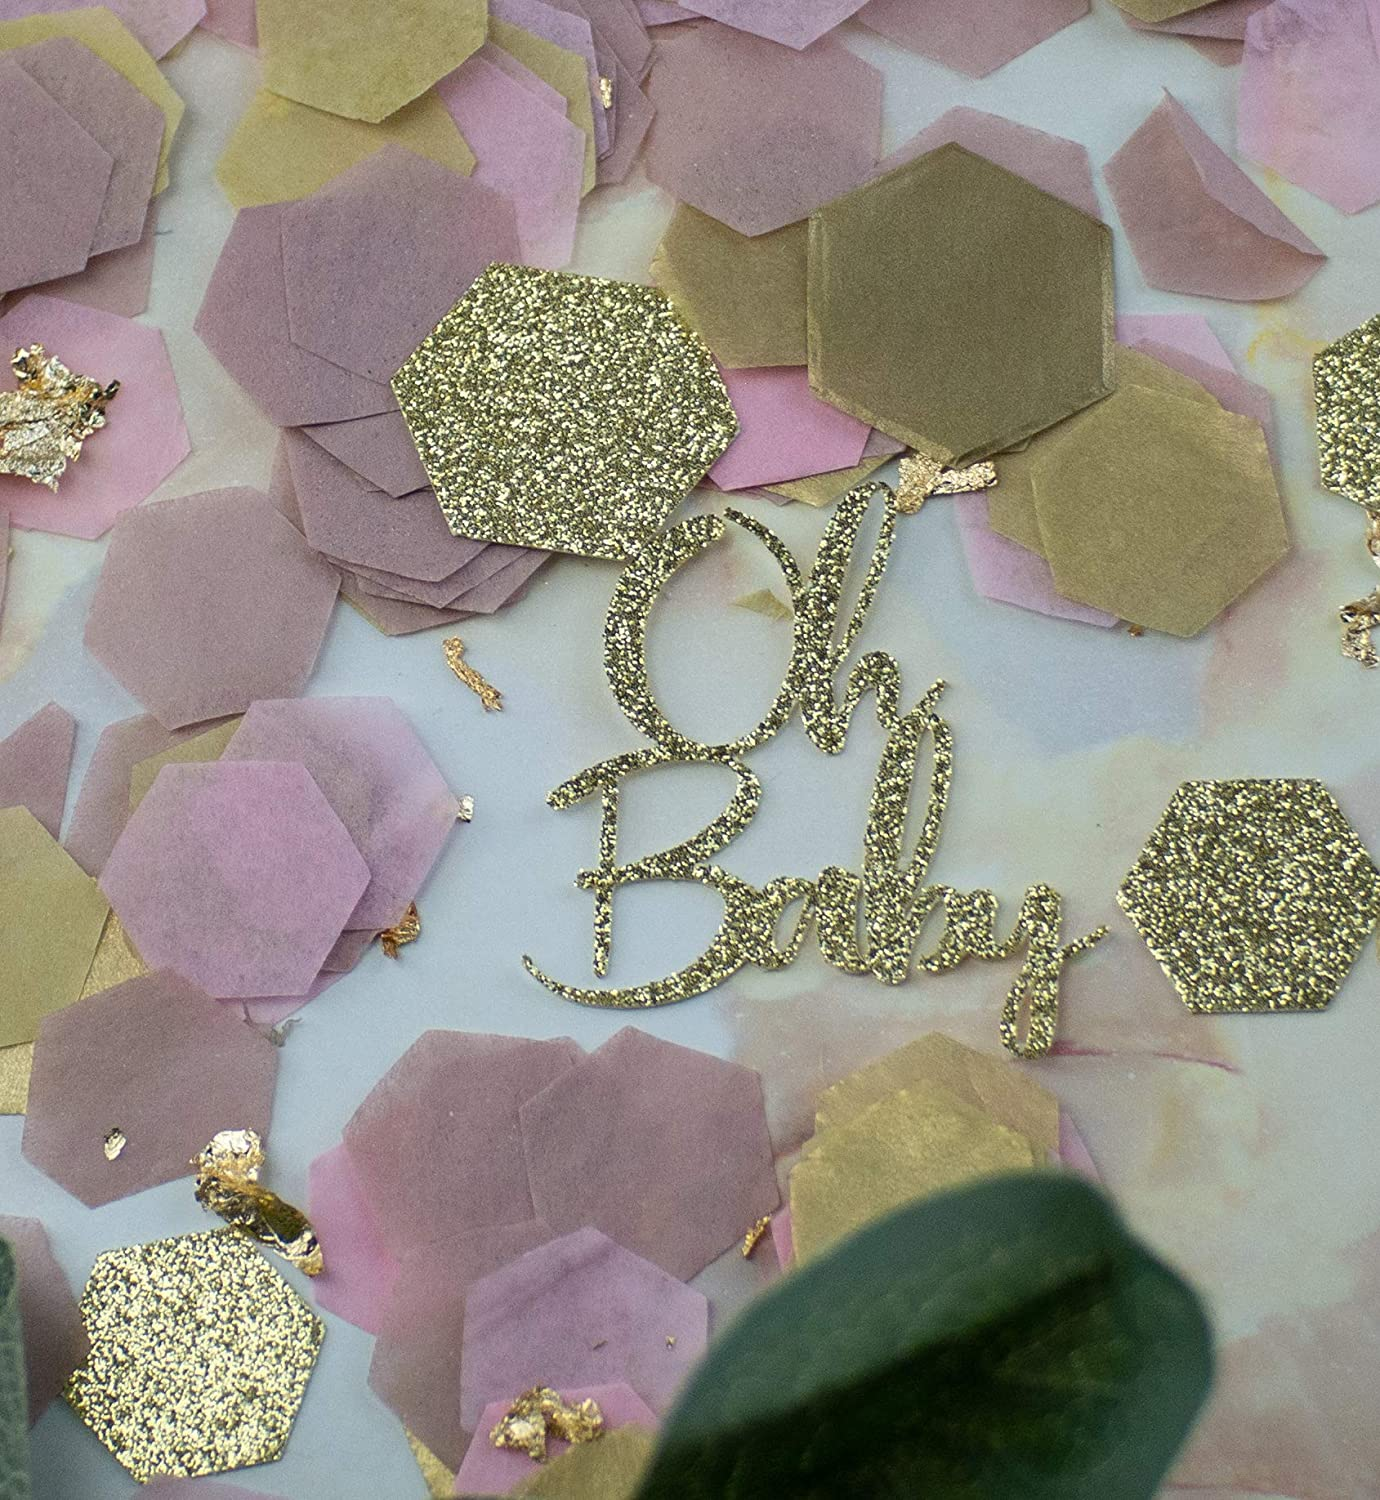 Pink and Gold Baby Shower Decorations Baby Girl Shower Decorations Oh Baby Baby Shower Table Decorations Baby Shower Decor Baby Shower Confetti